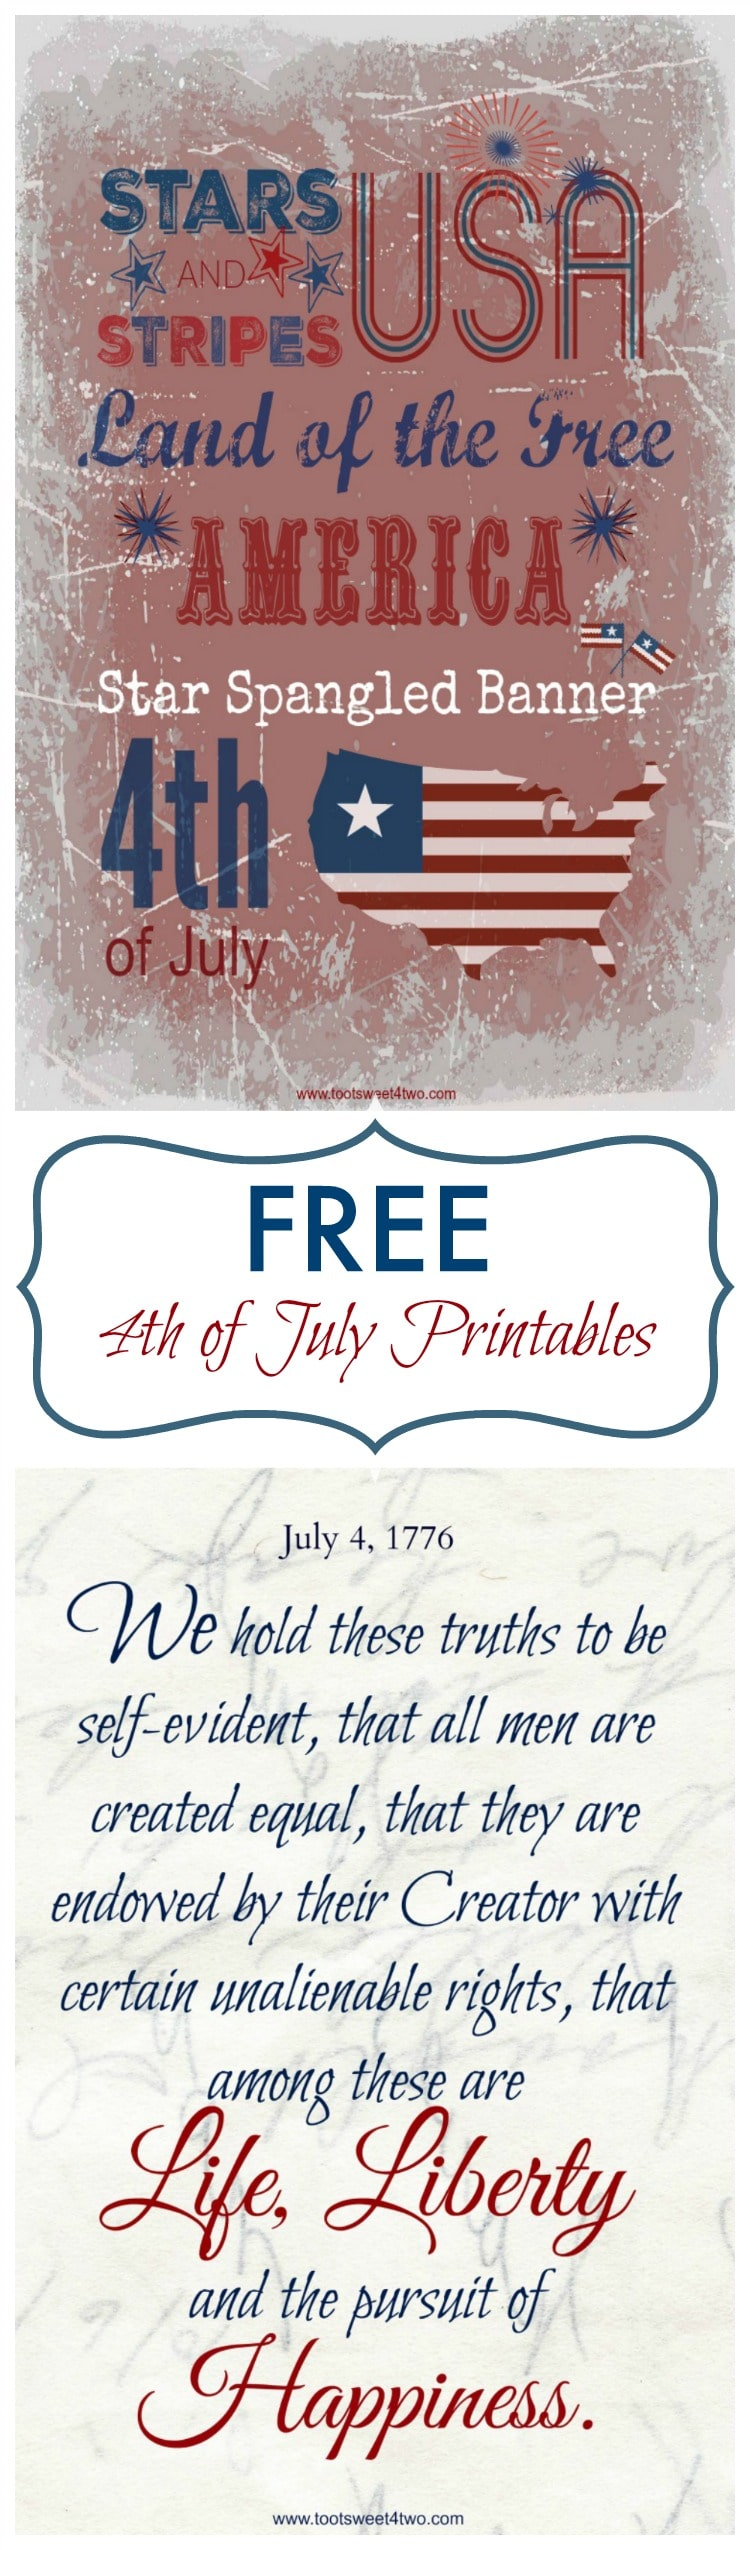 In honor of Independence Day, check out these four FREE Patriotic 4th of July printables, suitable for framing! Perfect for sharing on social media too, this post includes a brief tutorial on how to create each printable yourself. But, if you aren't the DIY type, just click on the link included to print your own! | www.tootsweet4two.com